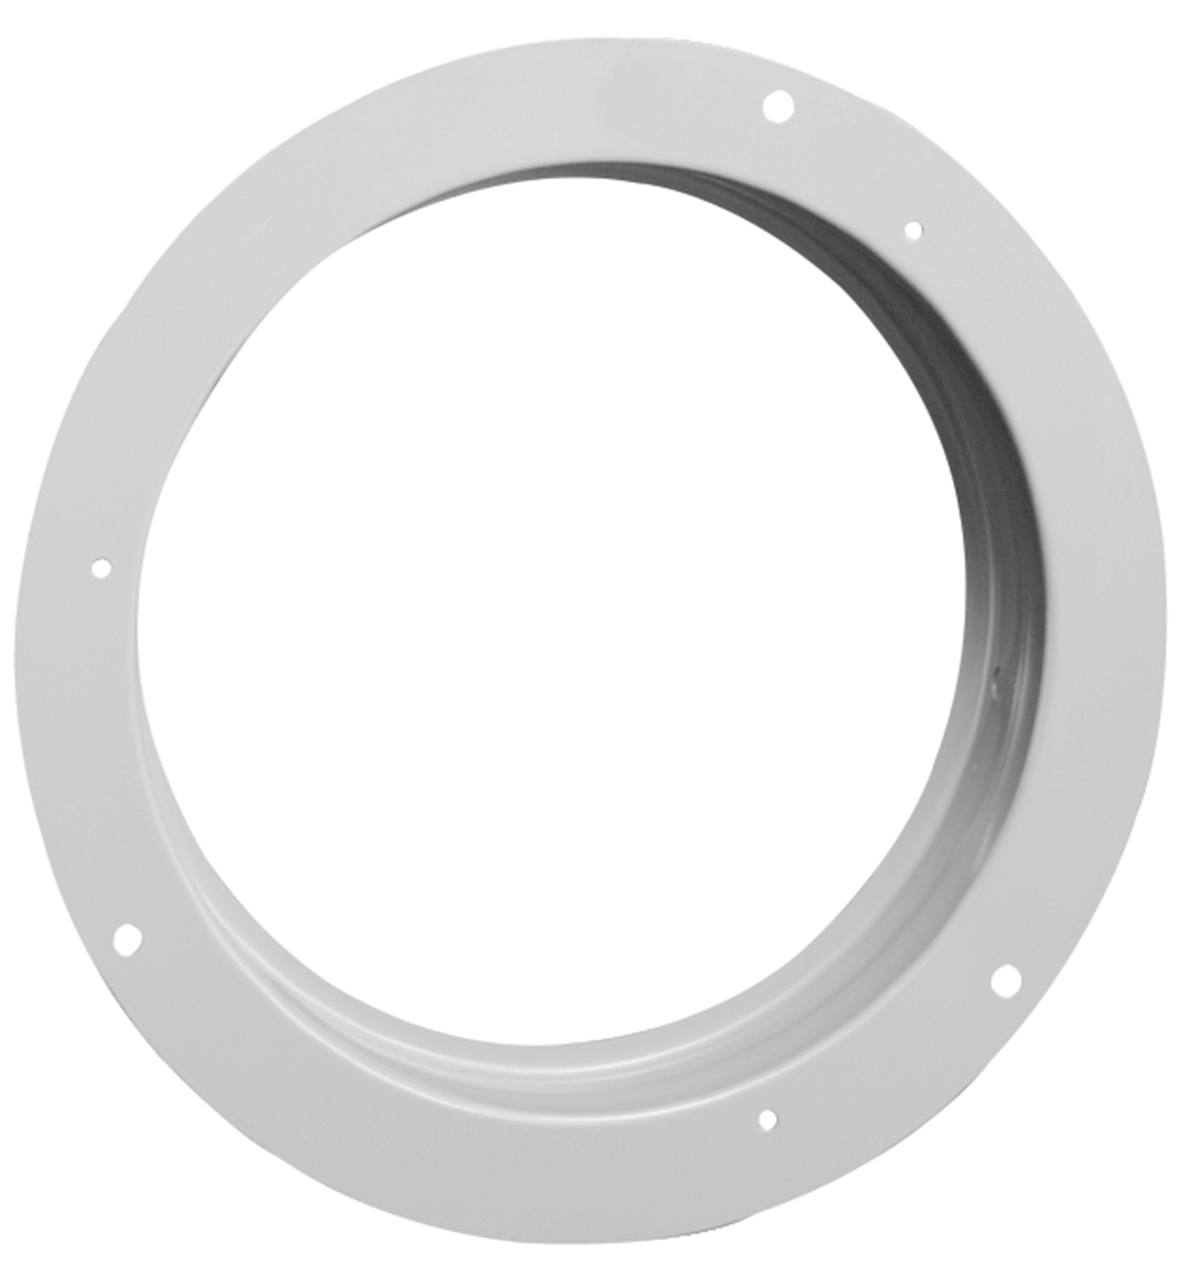 1900 Round Ceiling Duct Ring Ameriflow